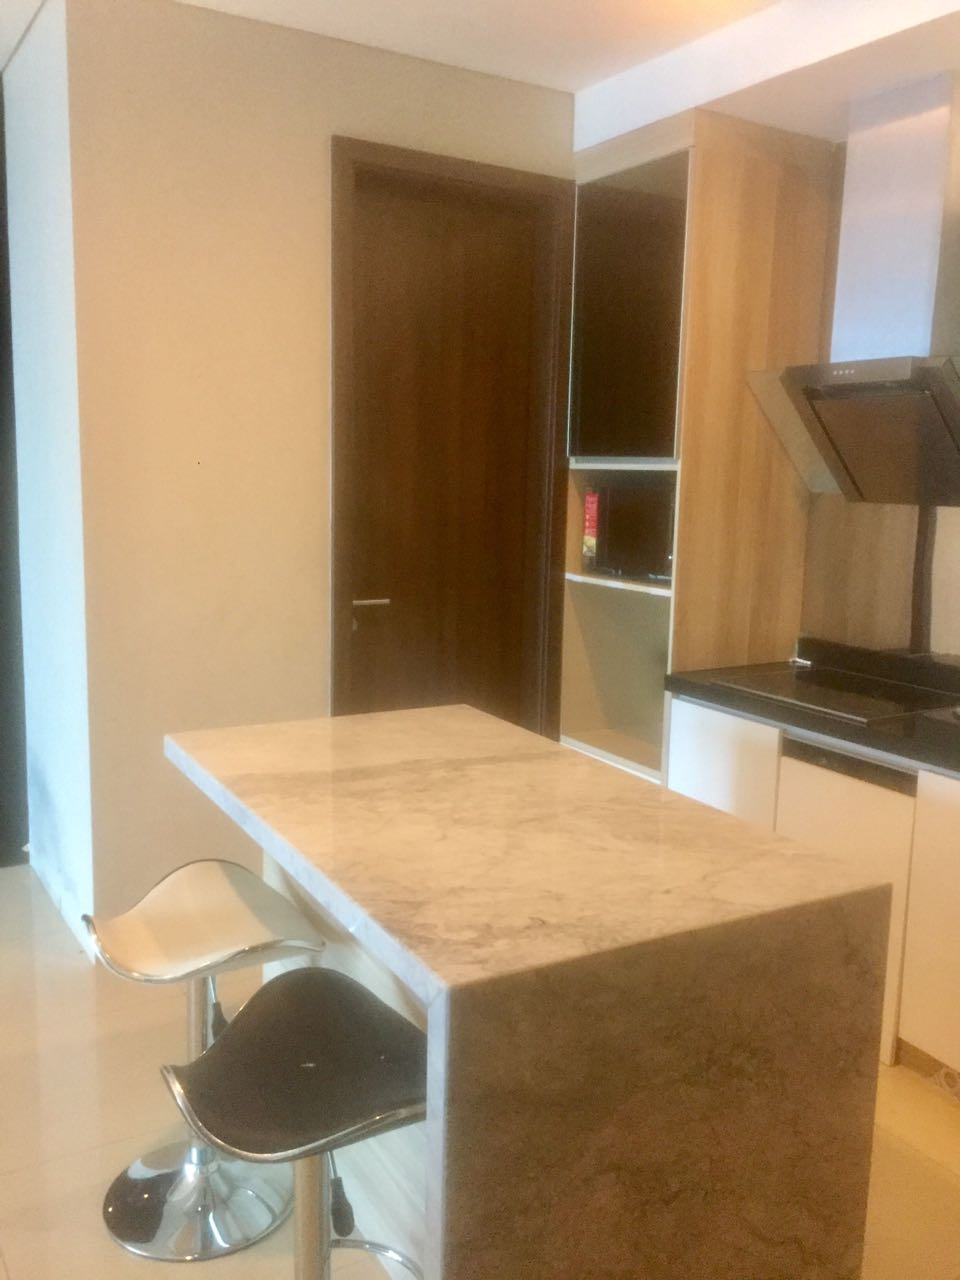 KEMANG VILLAGE 2BR APART 35th Floor with Private Lift on the TOP of LIPPO MALL!! EASY ACCESS!